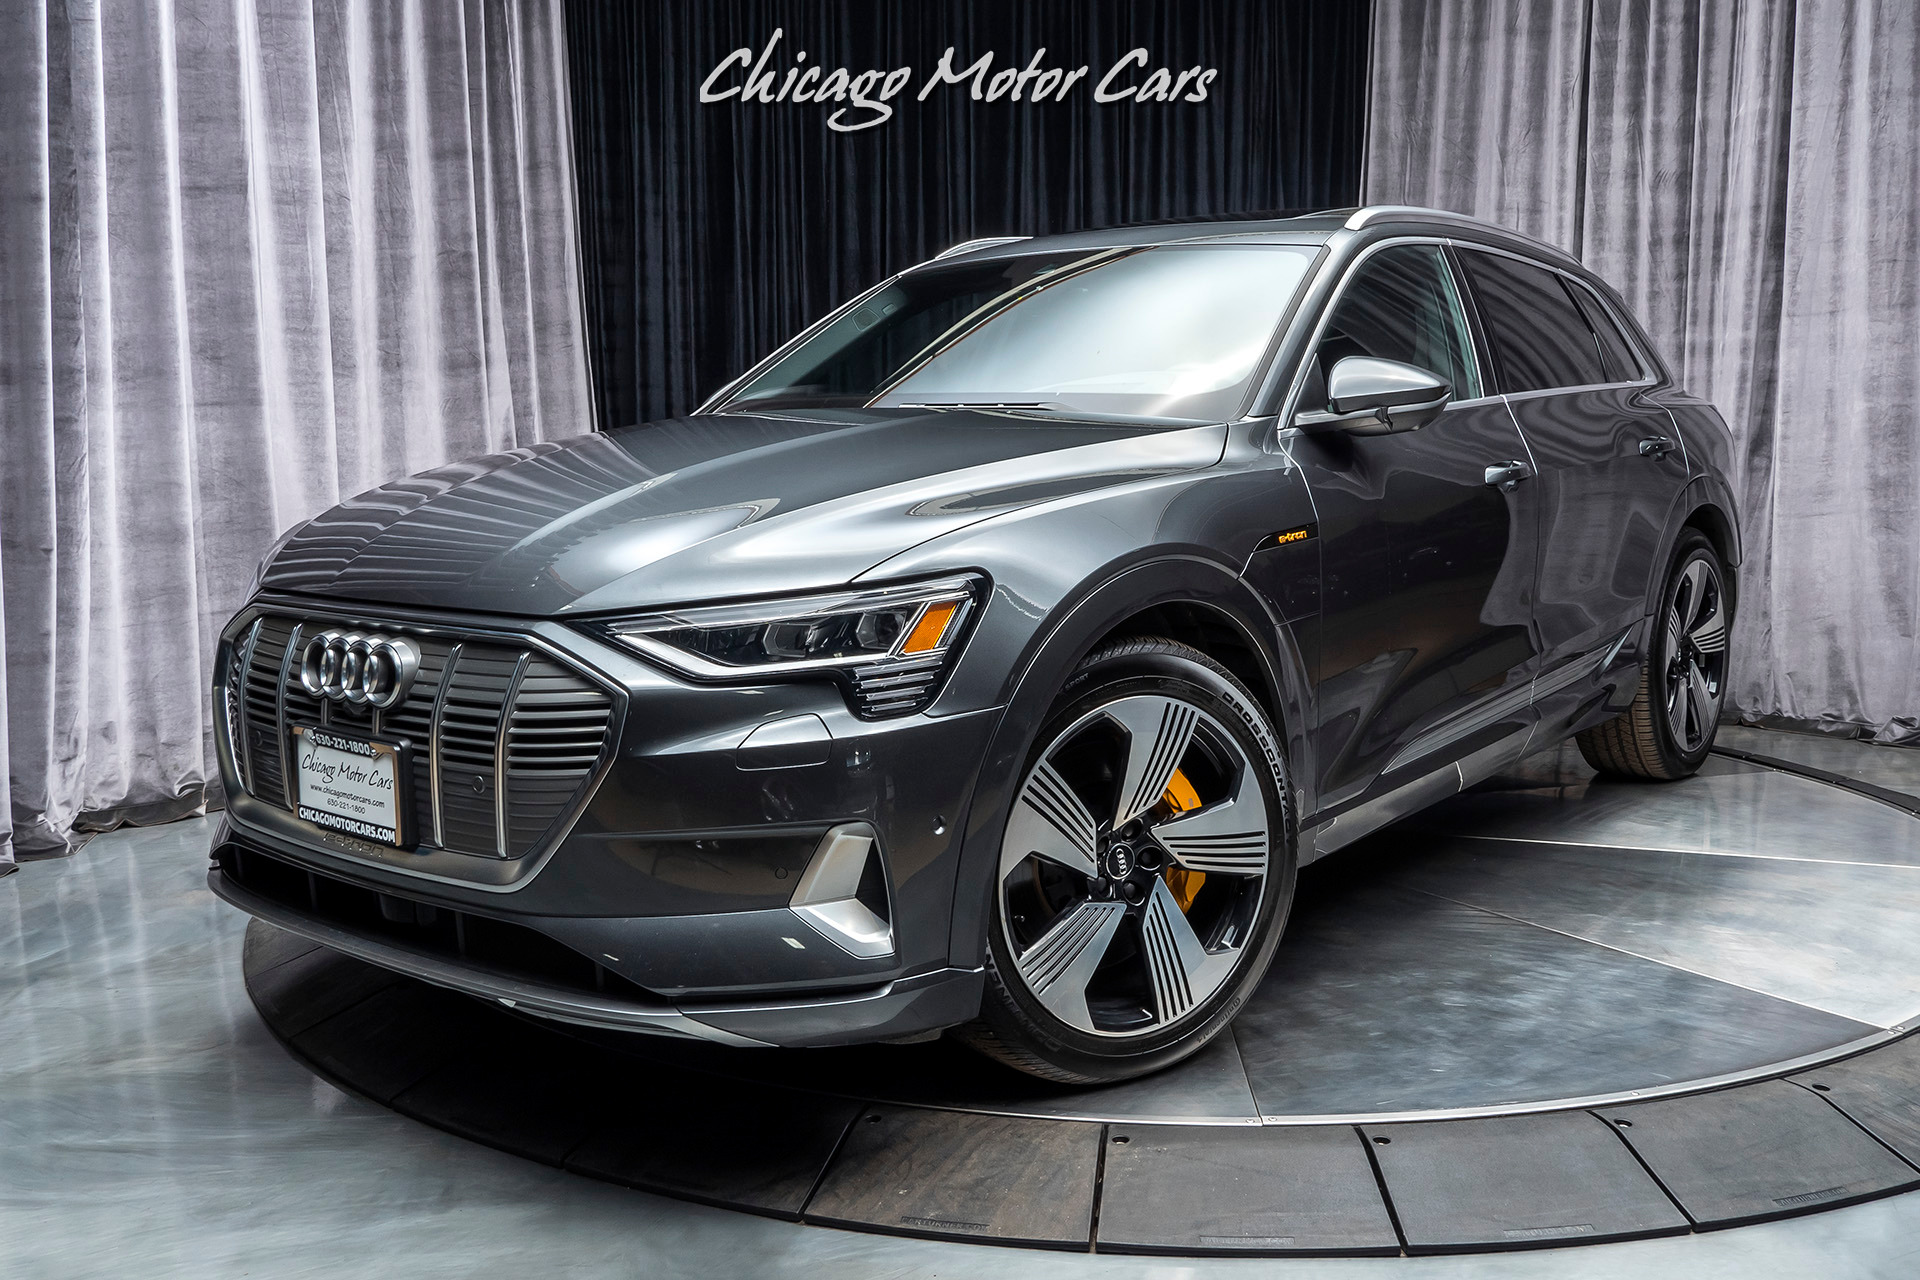 Used 2019 Audi E Tron Quattro Prestige Suv Msrp 89k Edition One Package For Sale Special Pricing Chicago Motor Cars Stock 16687